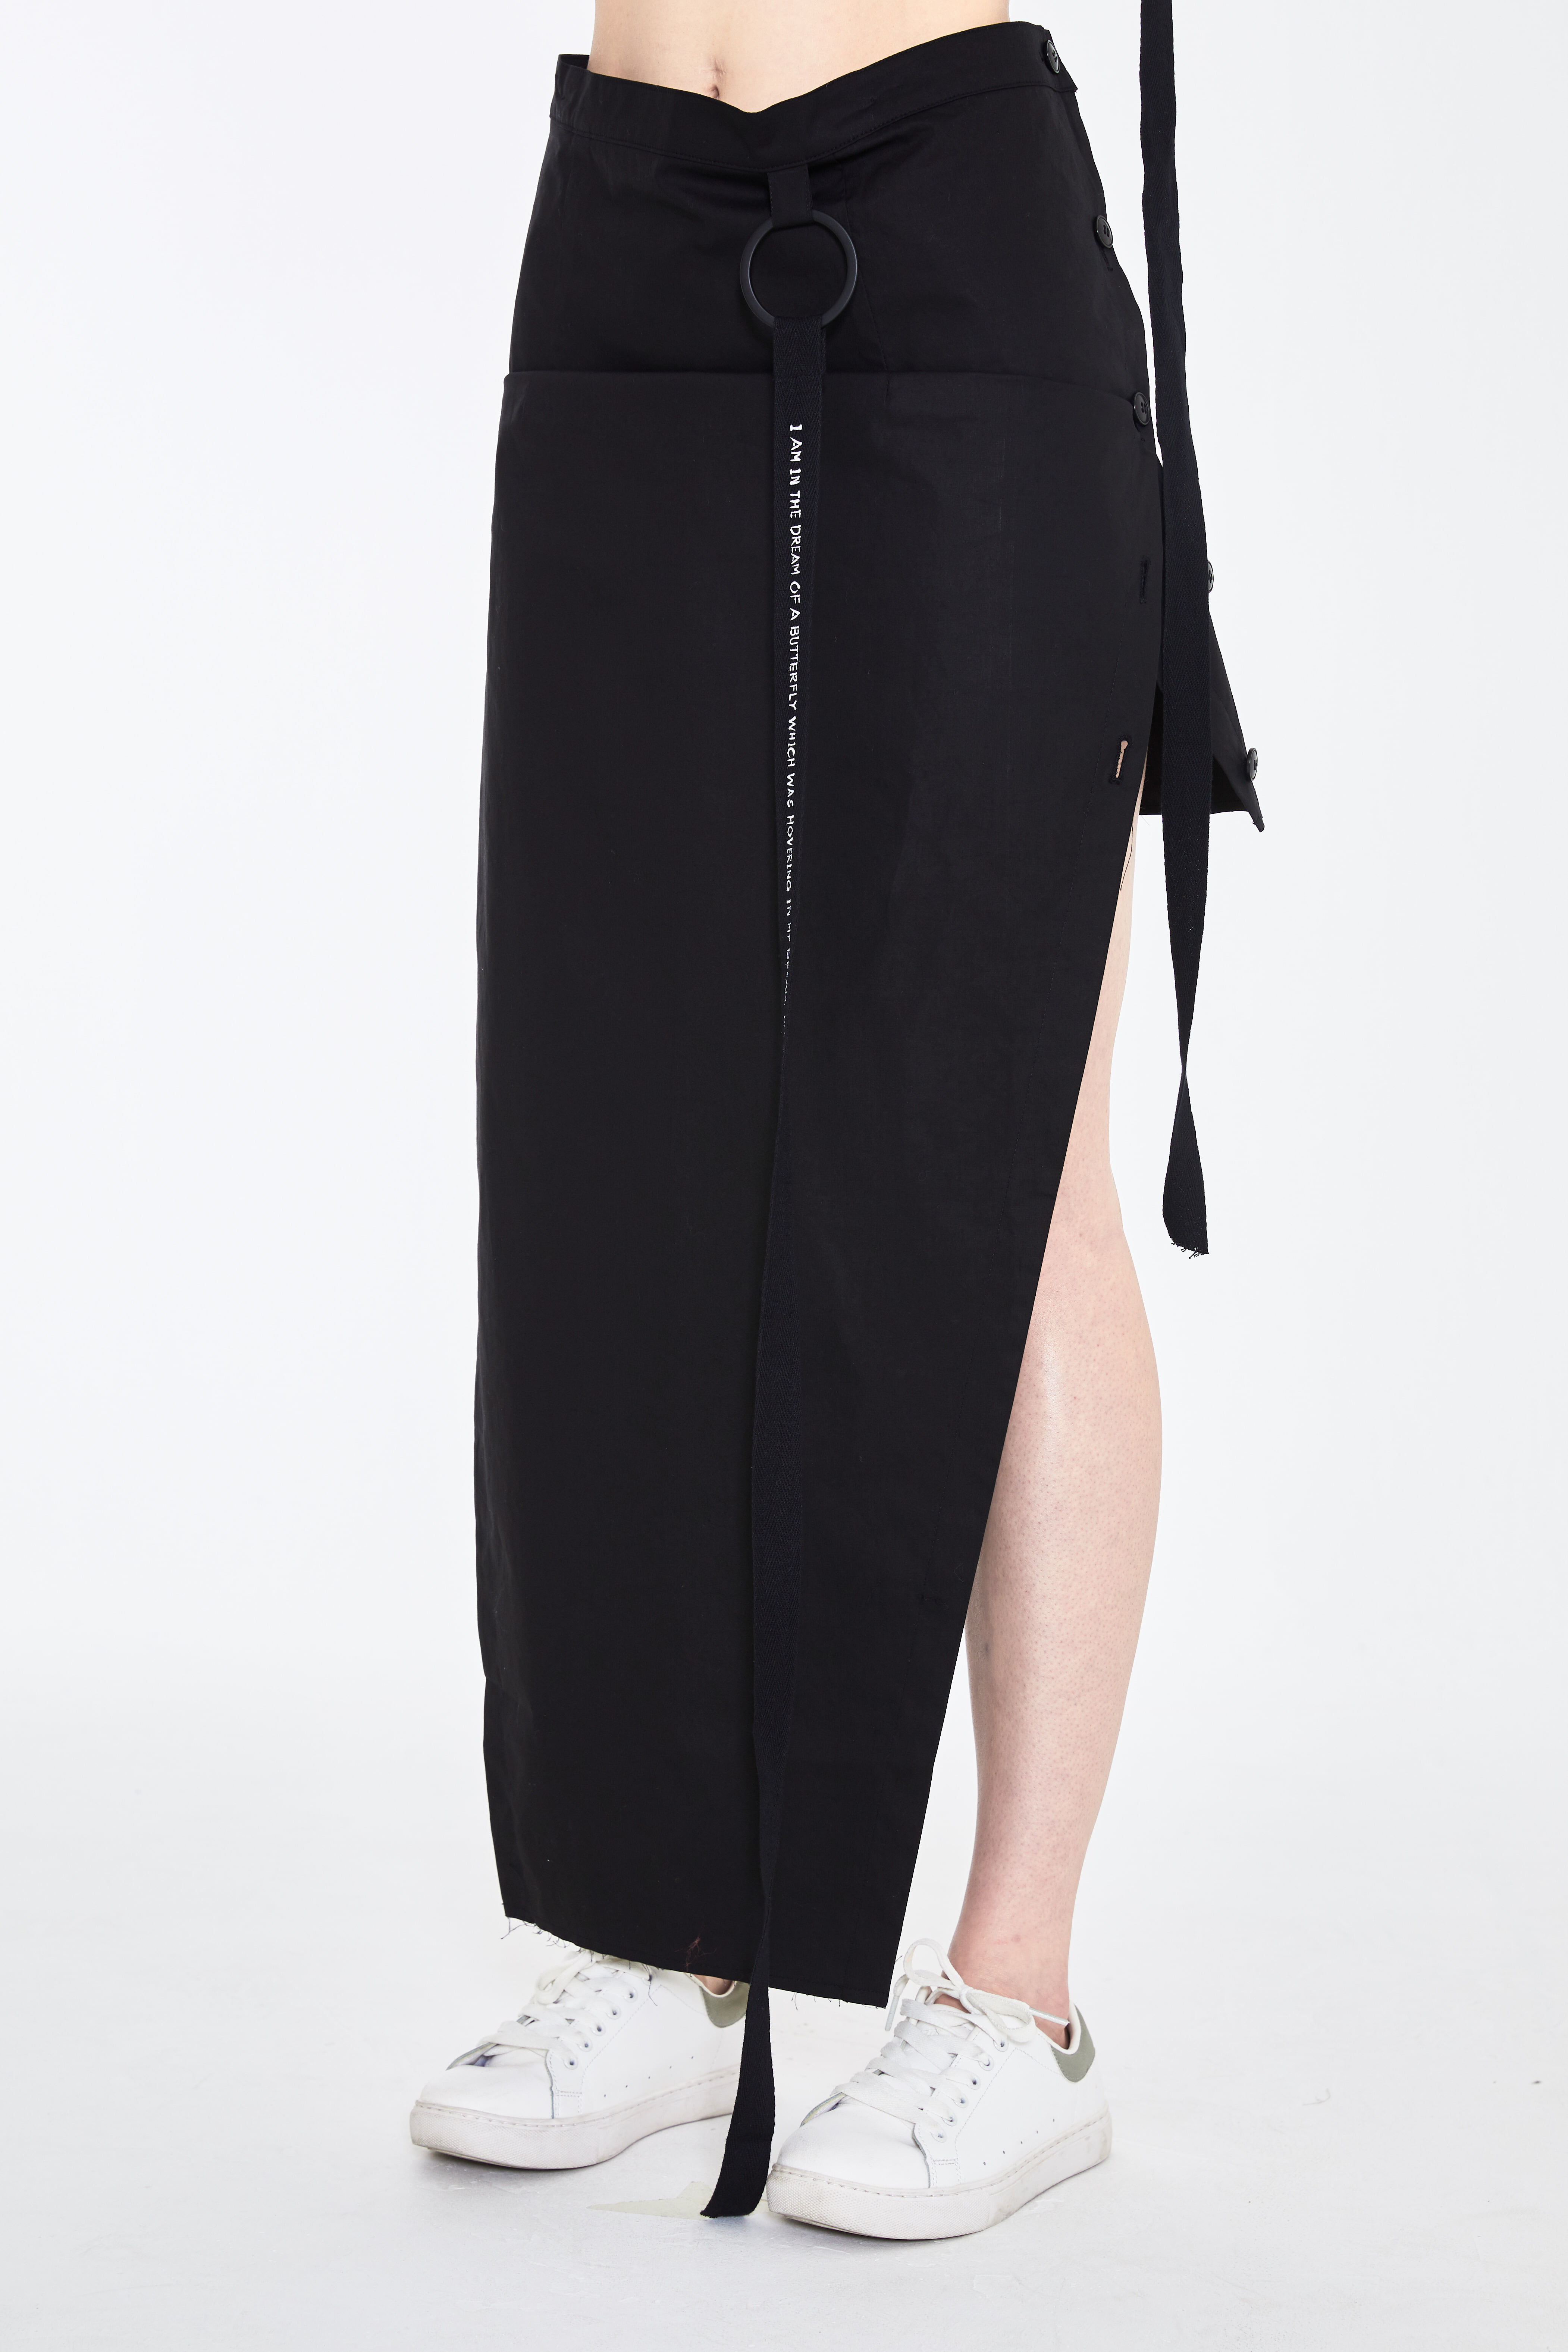 S/S19 LOO SEPARATE BUTTON SKIRT